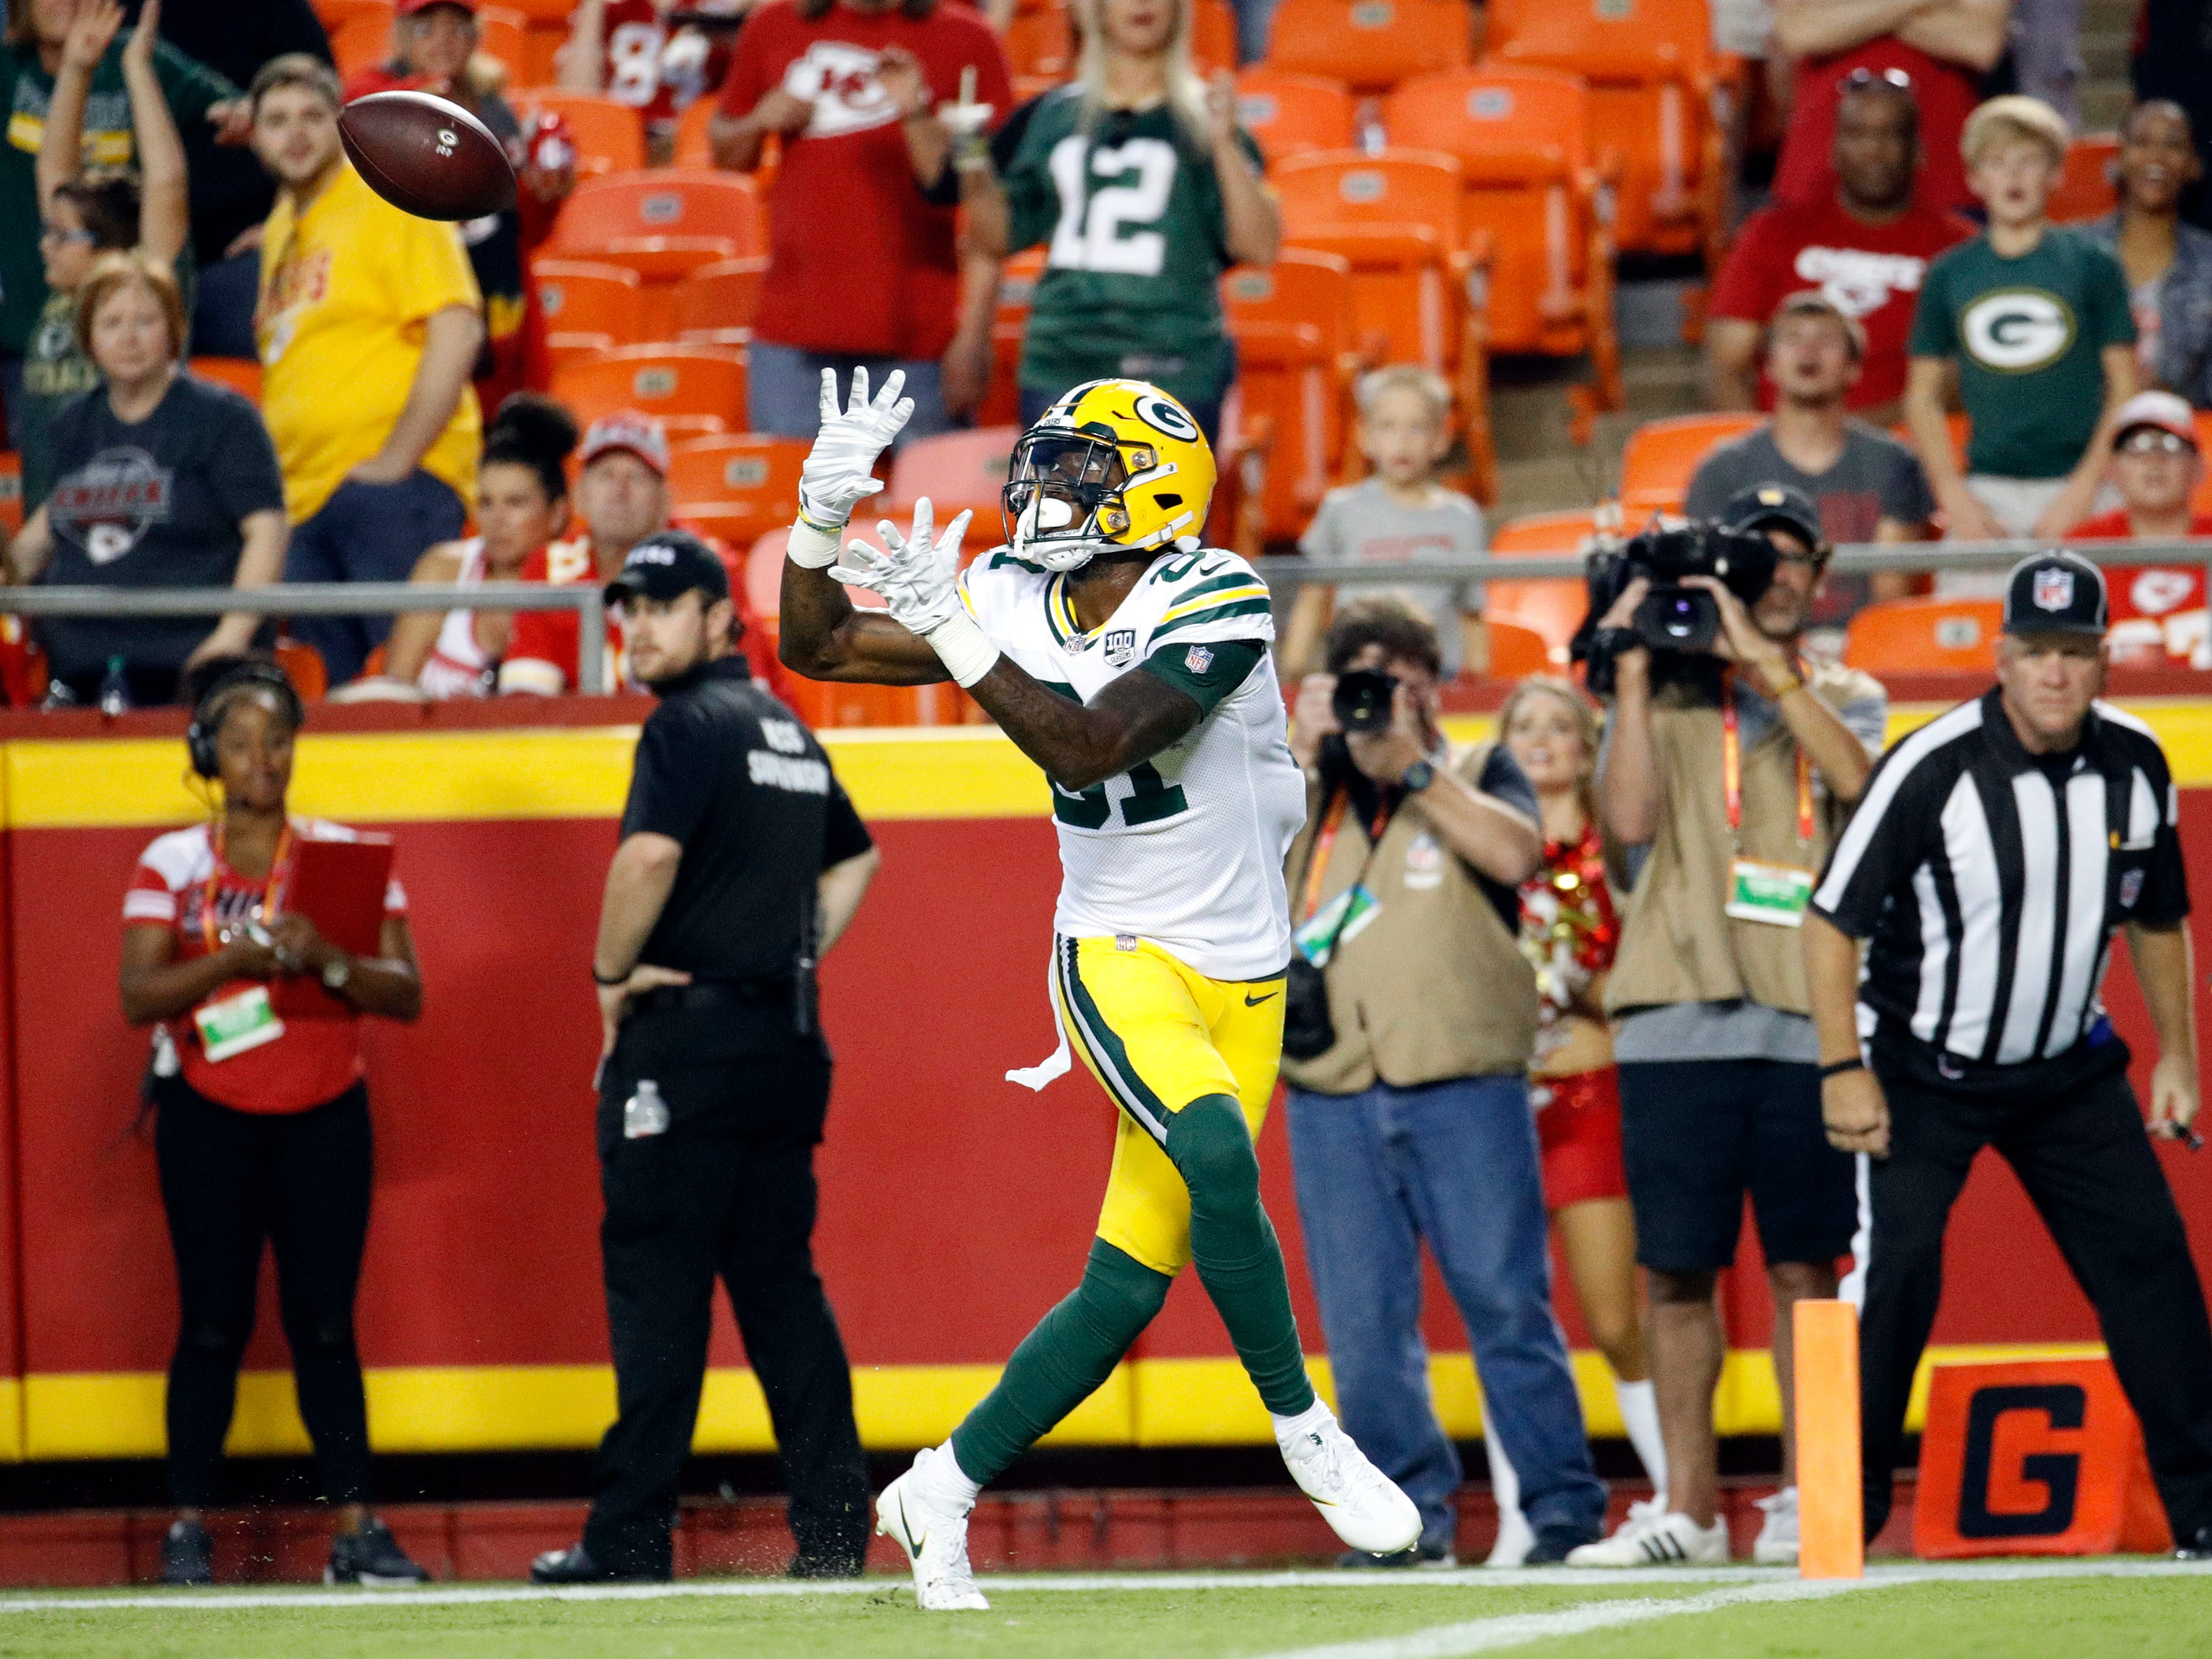 Green Bay Packers wide receiver Geronimo Allison (81) makes a touchdown catch during the first half of an NFL preseason football game against the Kansas City Chiefs in Kansas City, Mo., Thursday, Aug. 30, 2018.